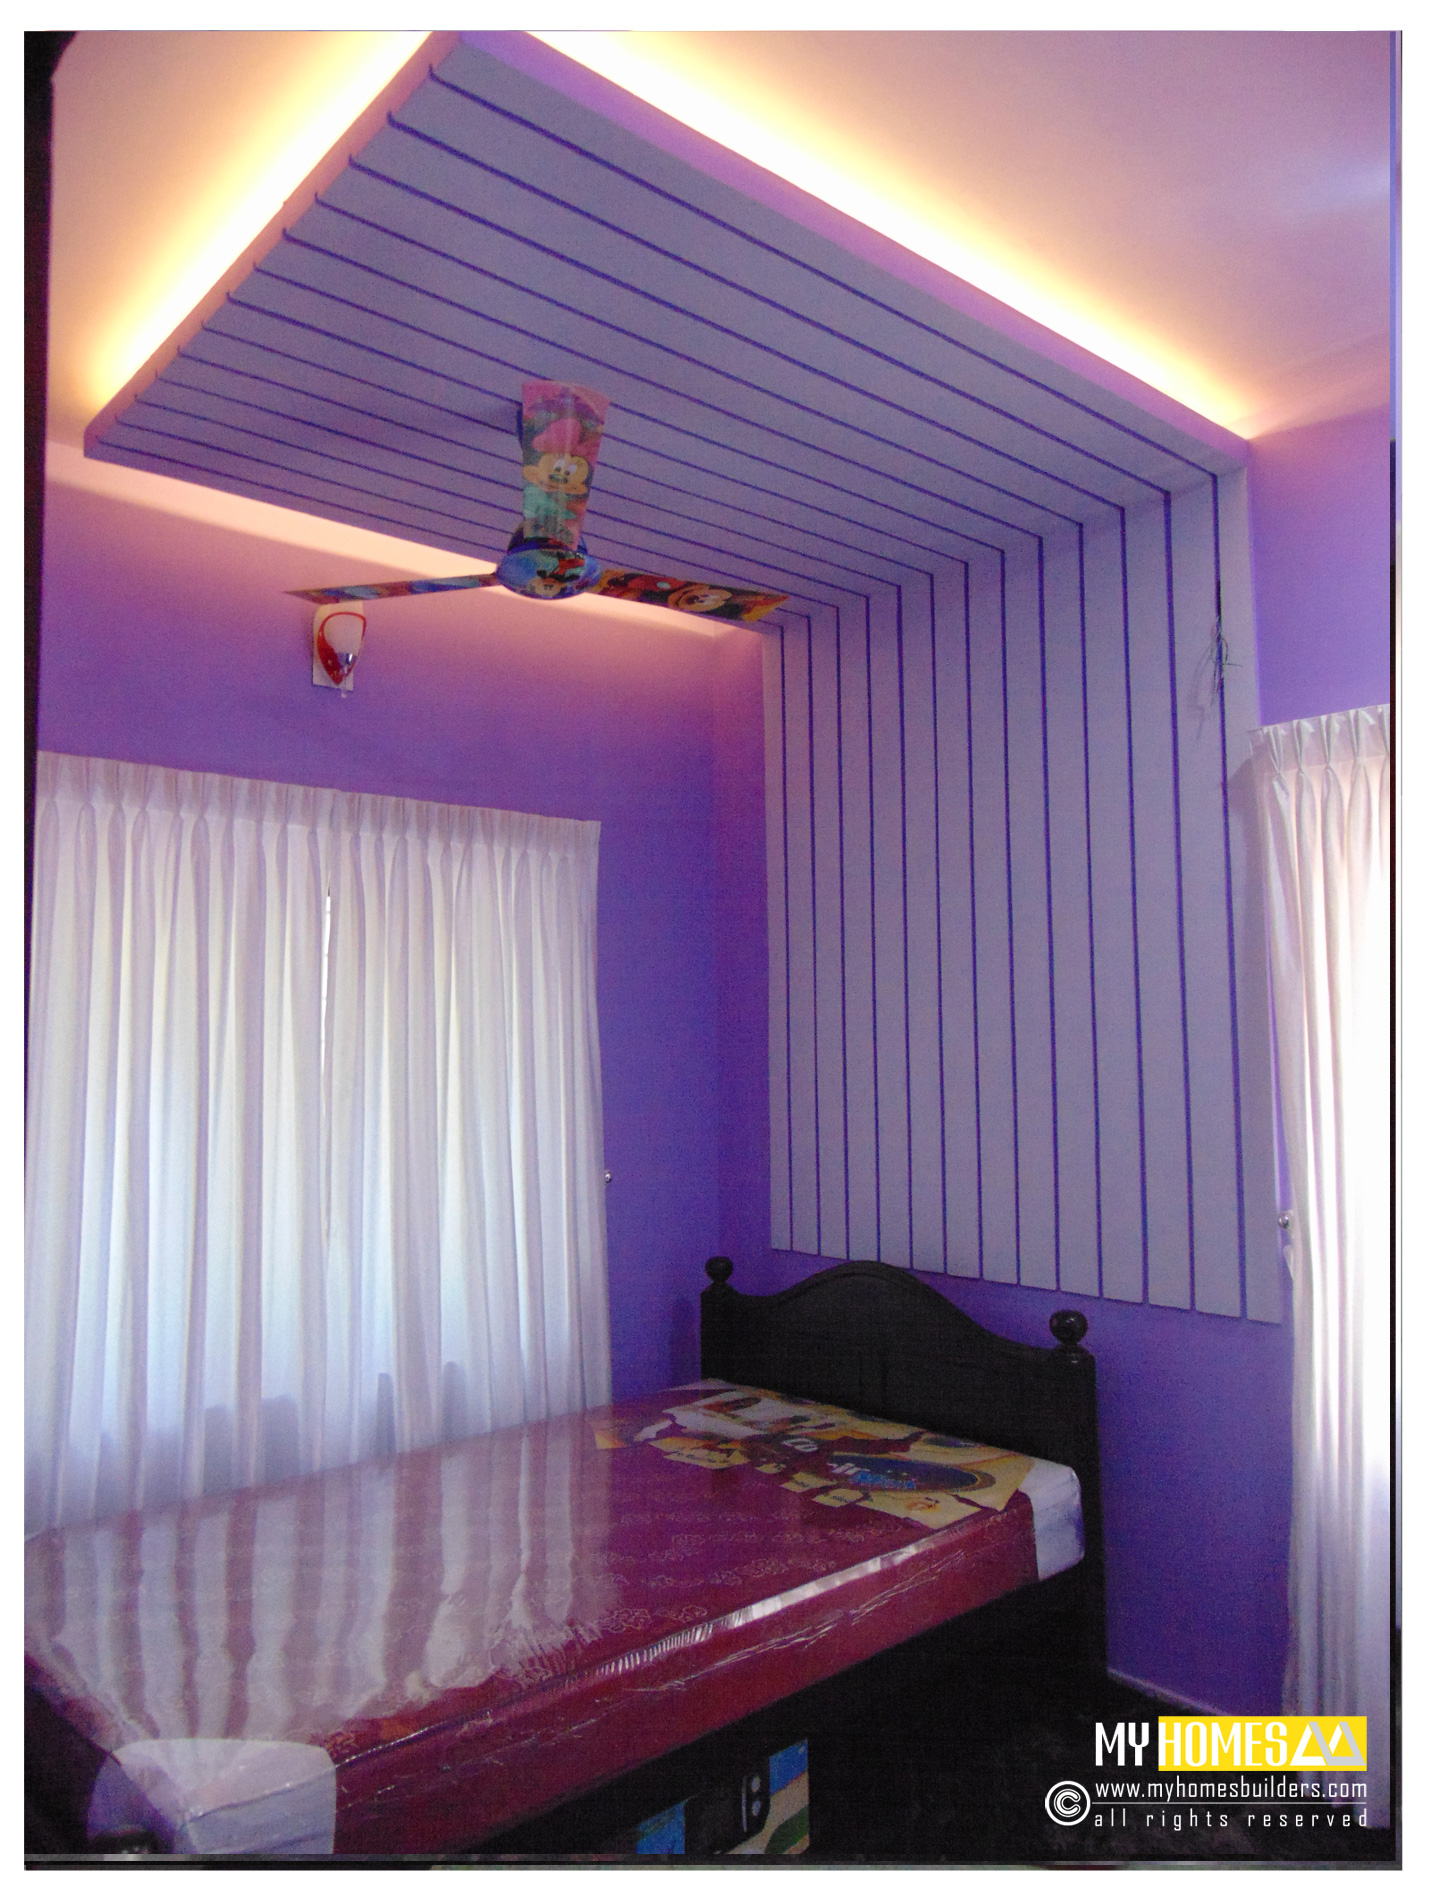 Simple style interior ideal kids bedroom designs in kerala india - Latest design of bedroom ...